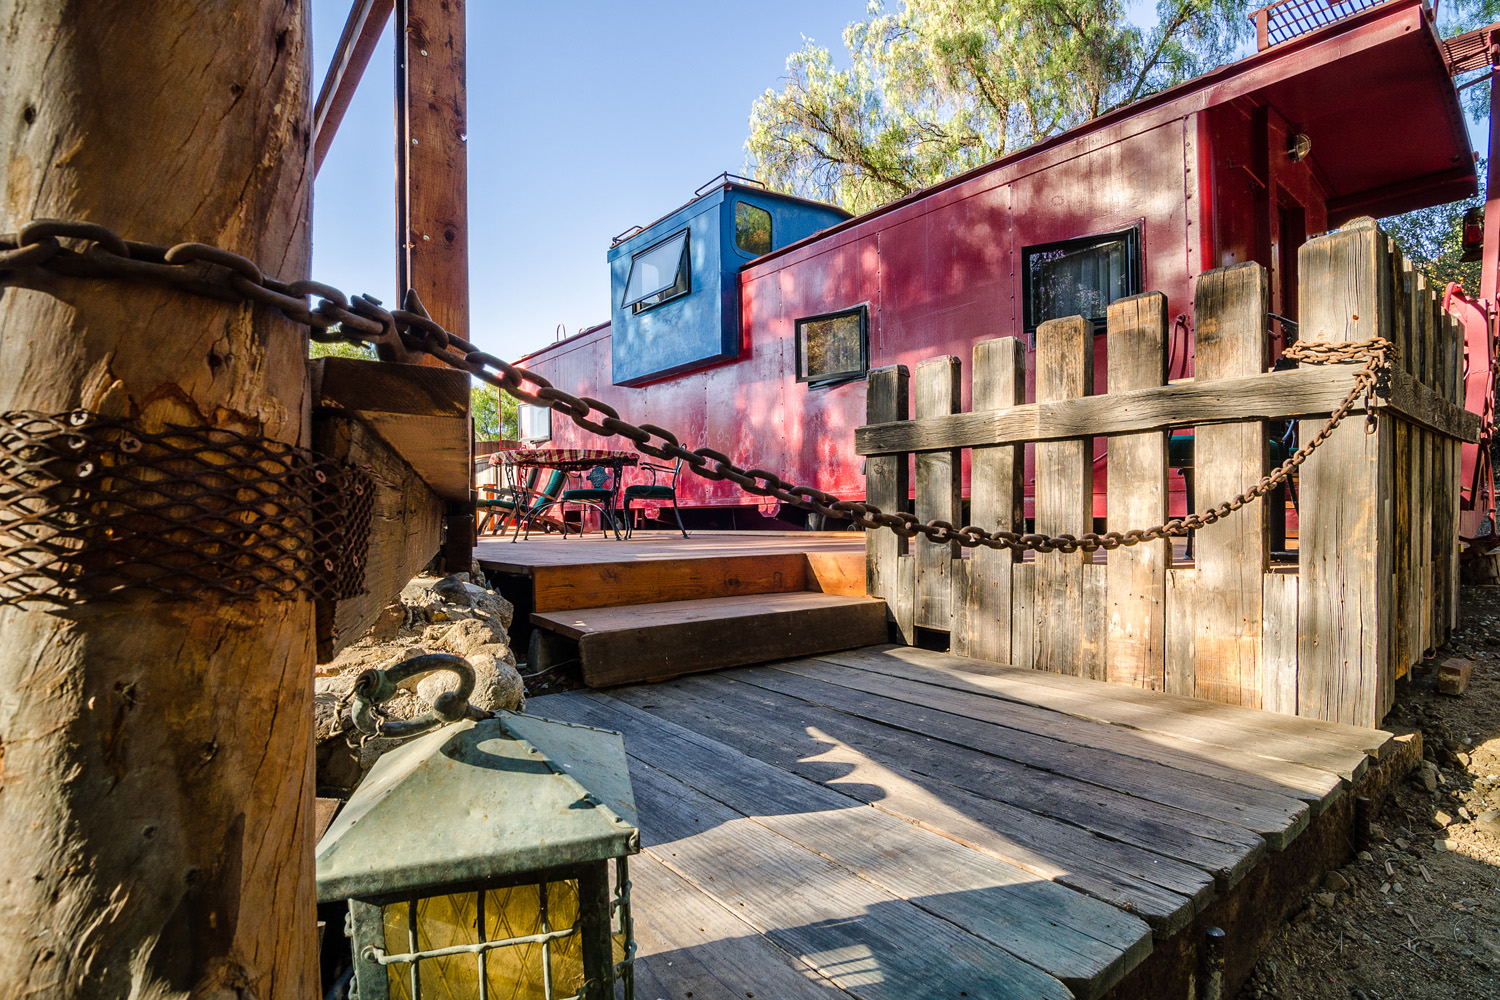 Wasim Muklashy Photography_Agoura Hills_Caboose_Real Estate Photography_02.jpg